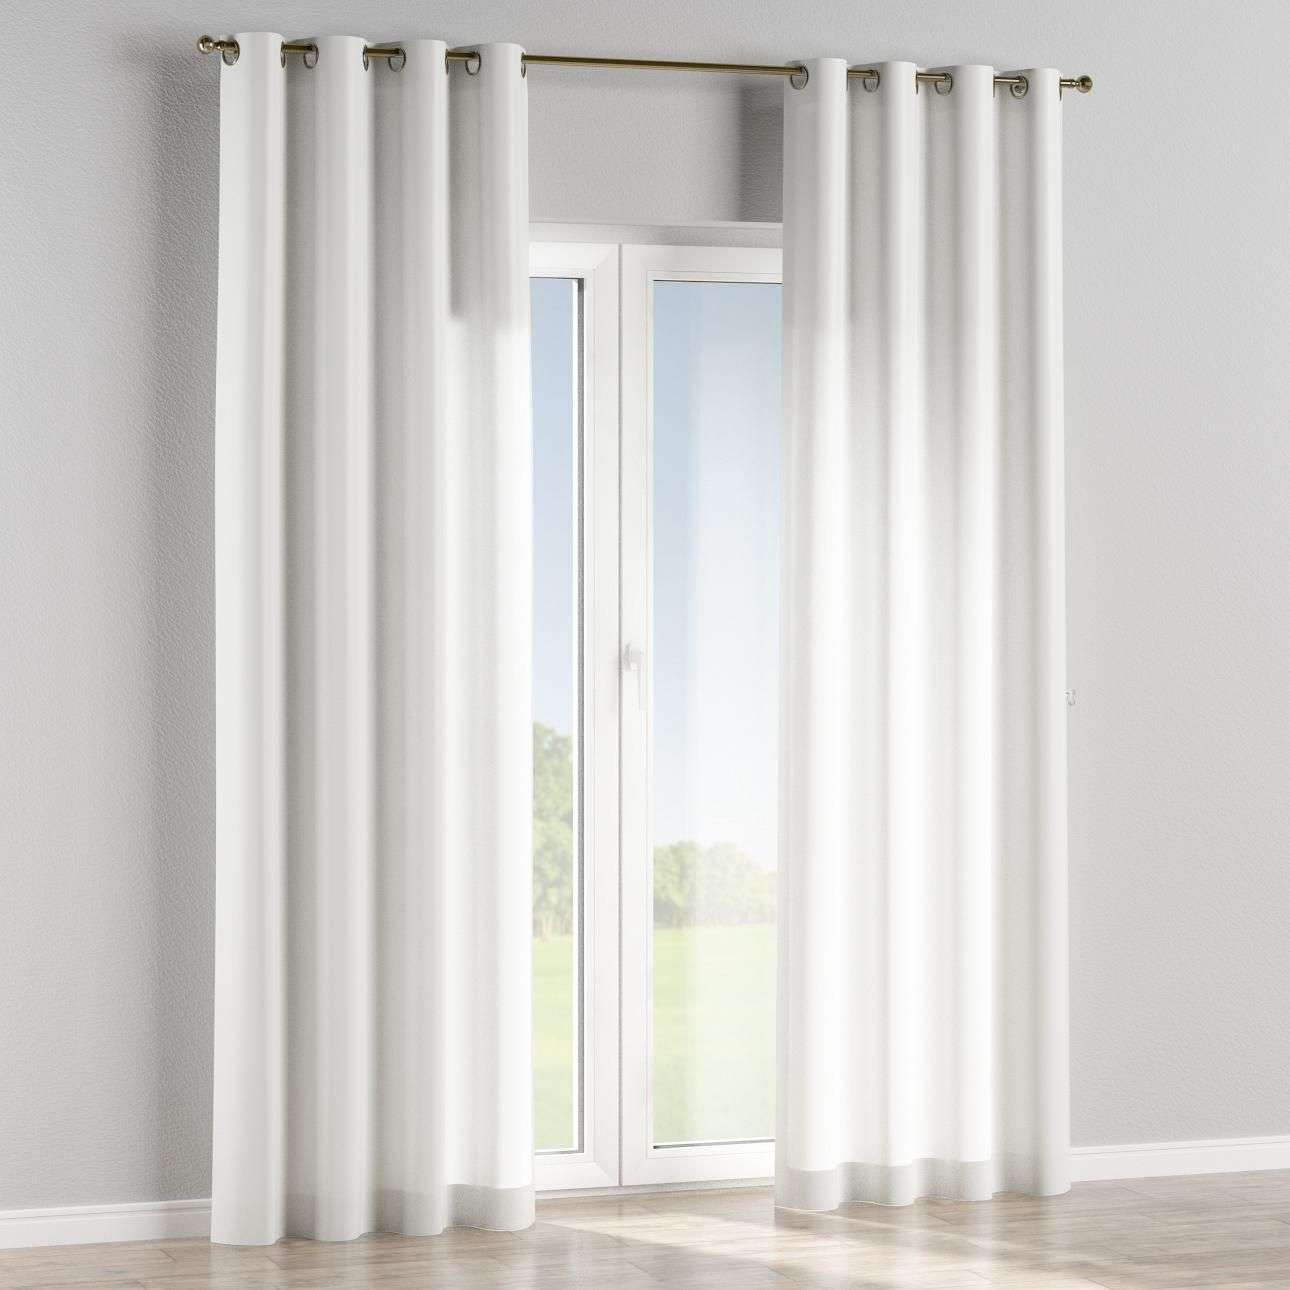 Eyelet lined curtains in collection Mirella, fabric: 141-13